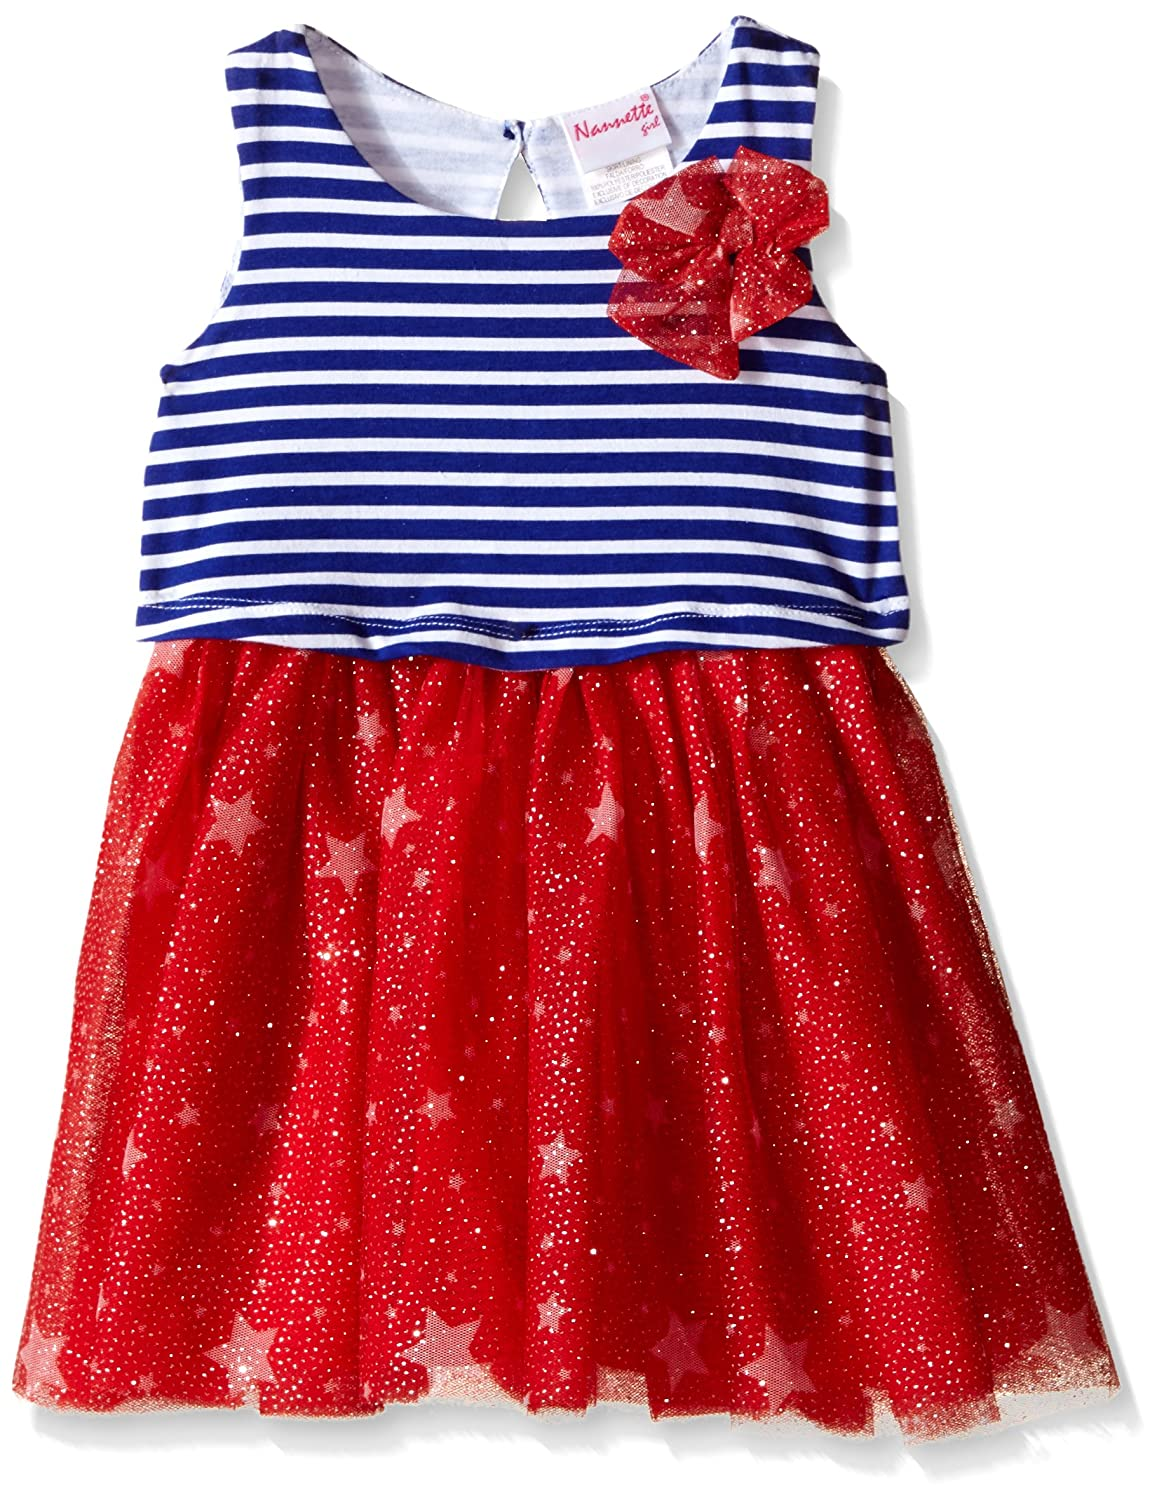 Red White and Blue Dresses for Girls: Amazon.com